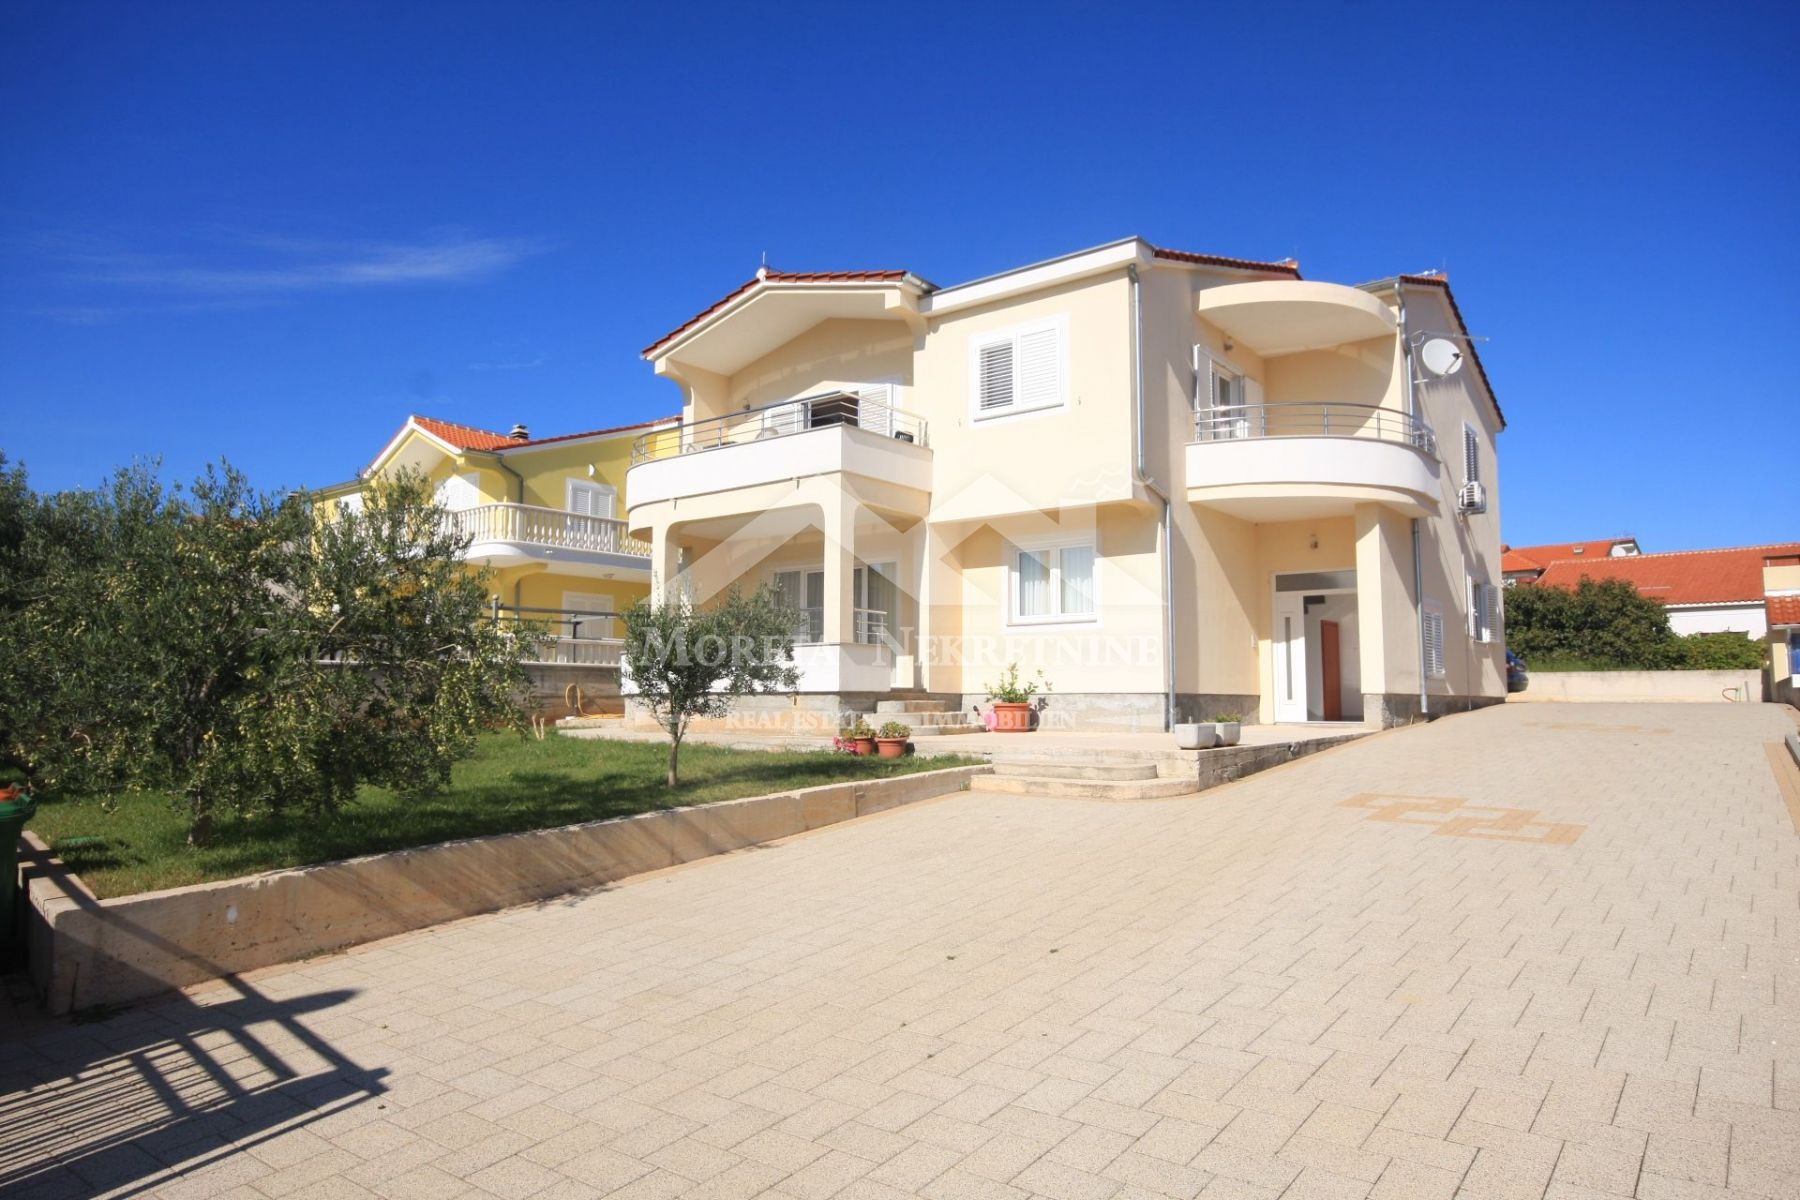 REDUCED!!! - Vodice, beautiful family house wth a sea view